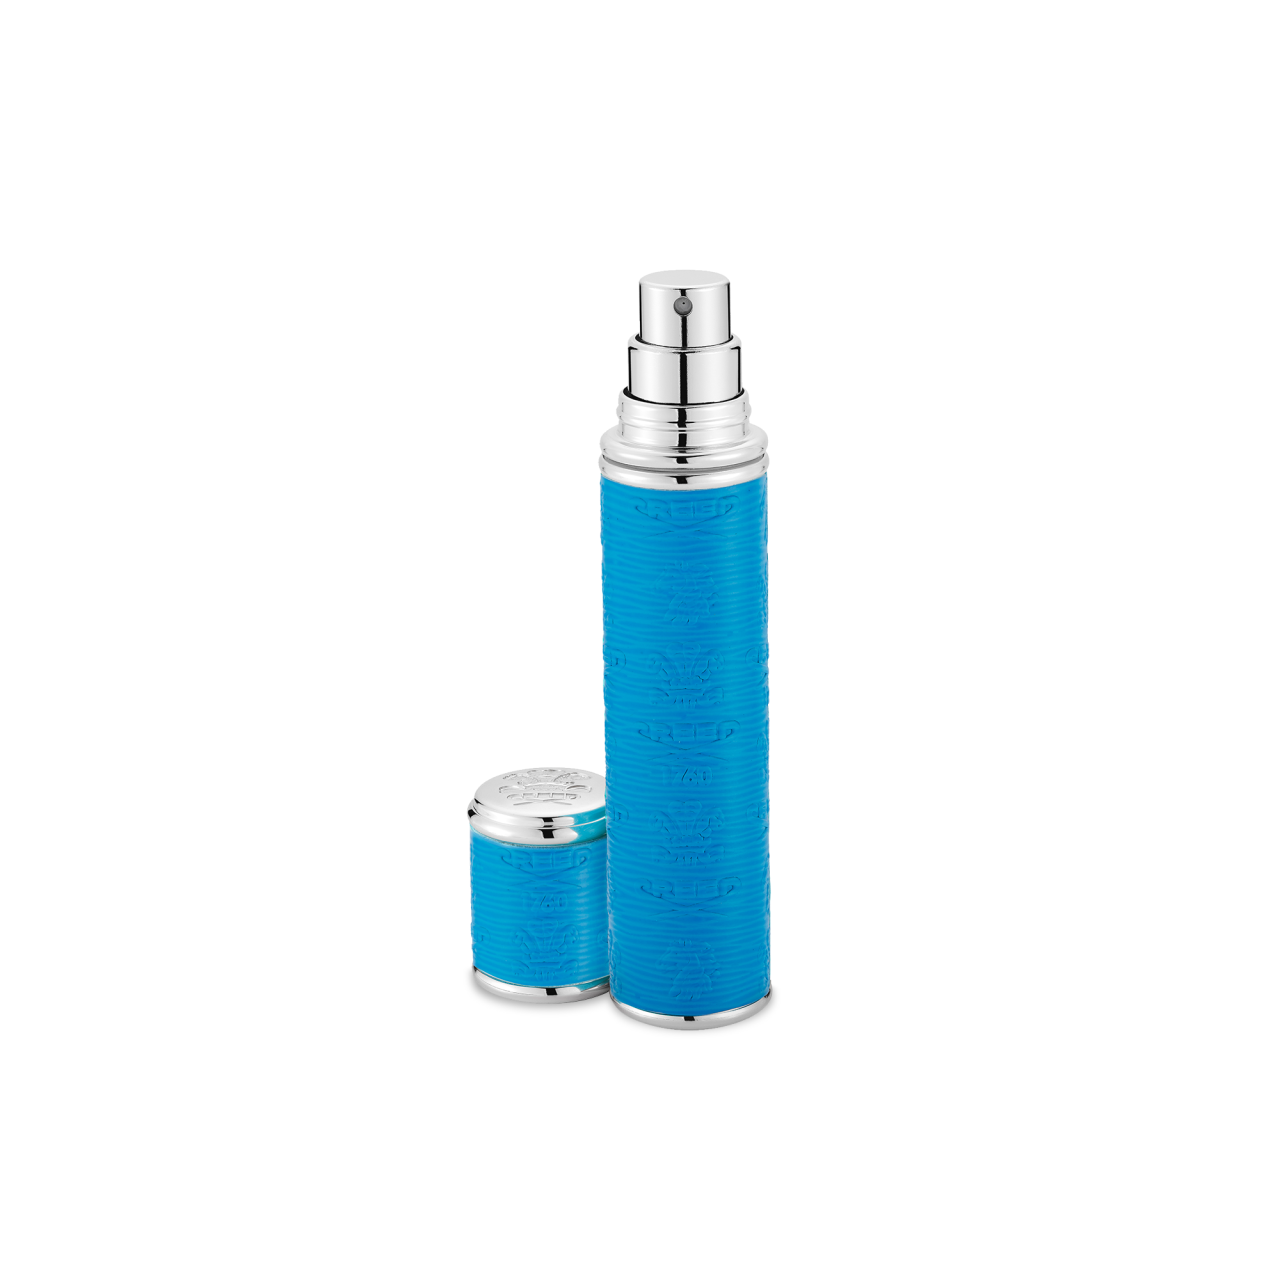 Neon Blue With Silver Trim Pocket Atomizer